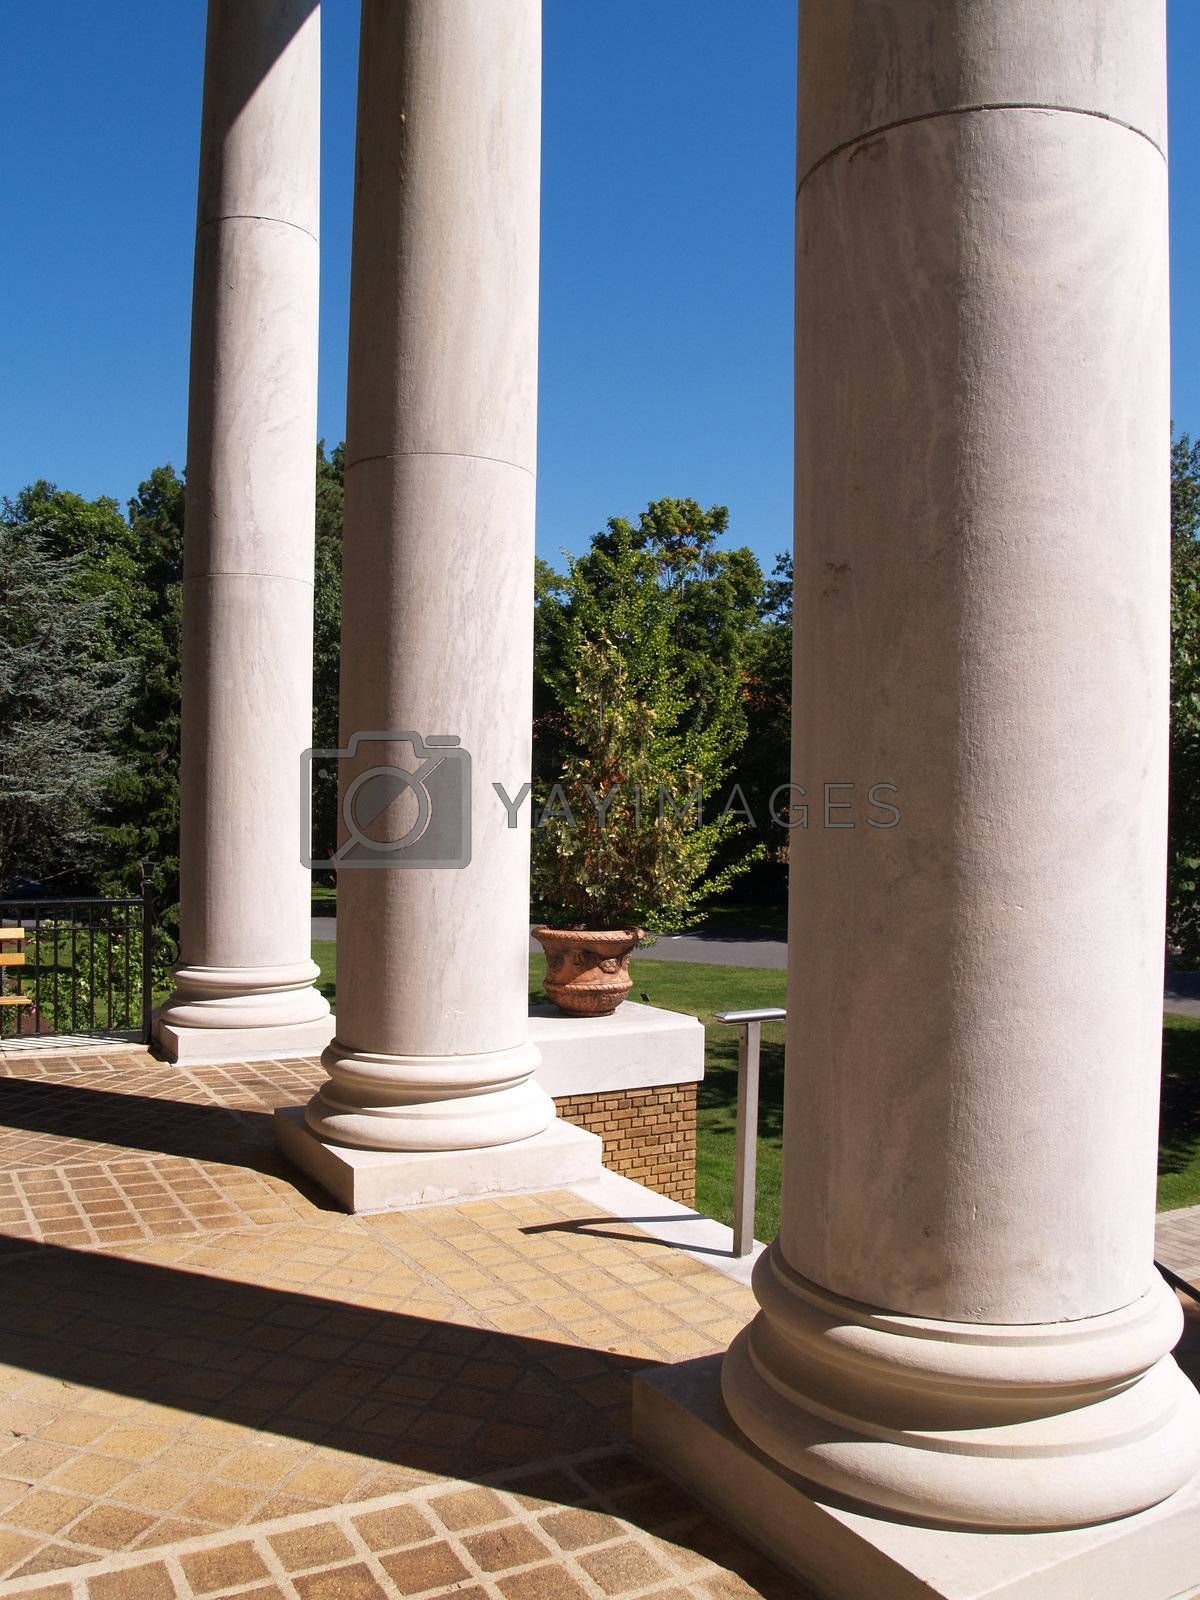 Royalty free image of large white porch columns by cfarmer